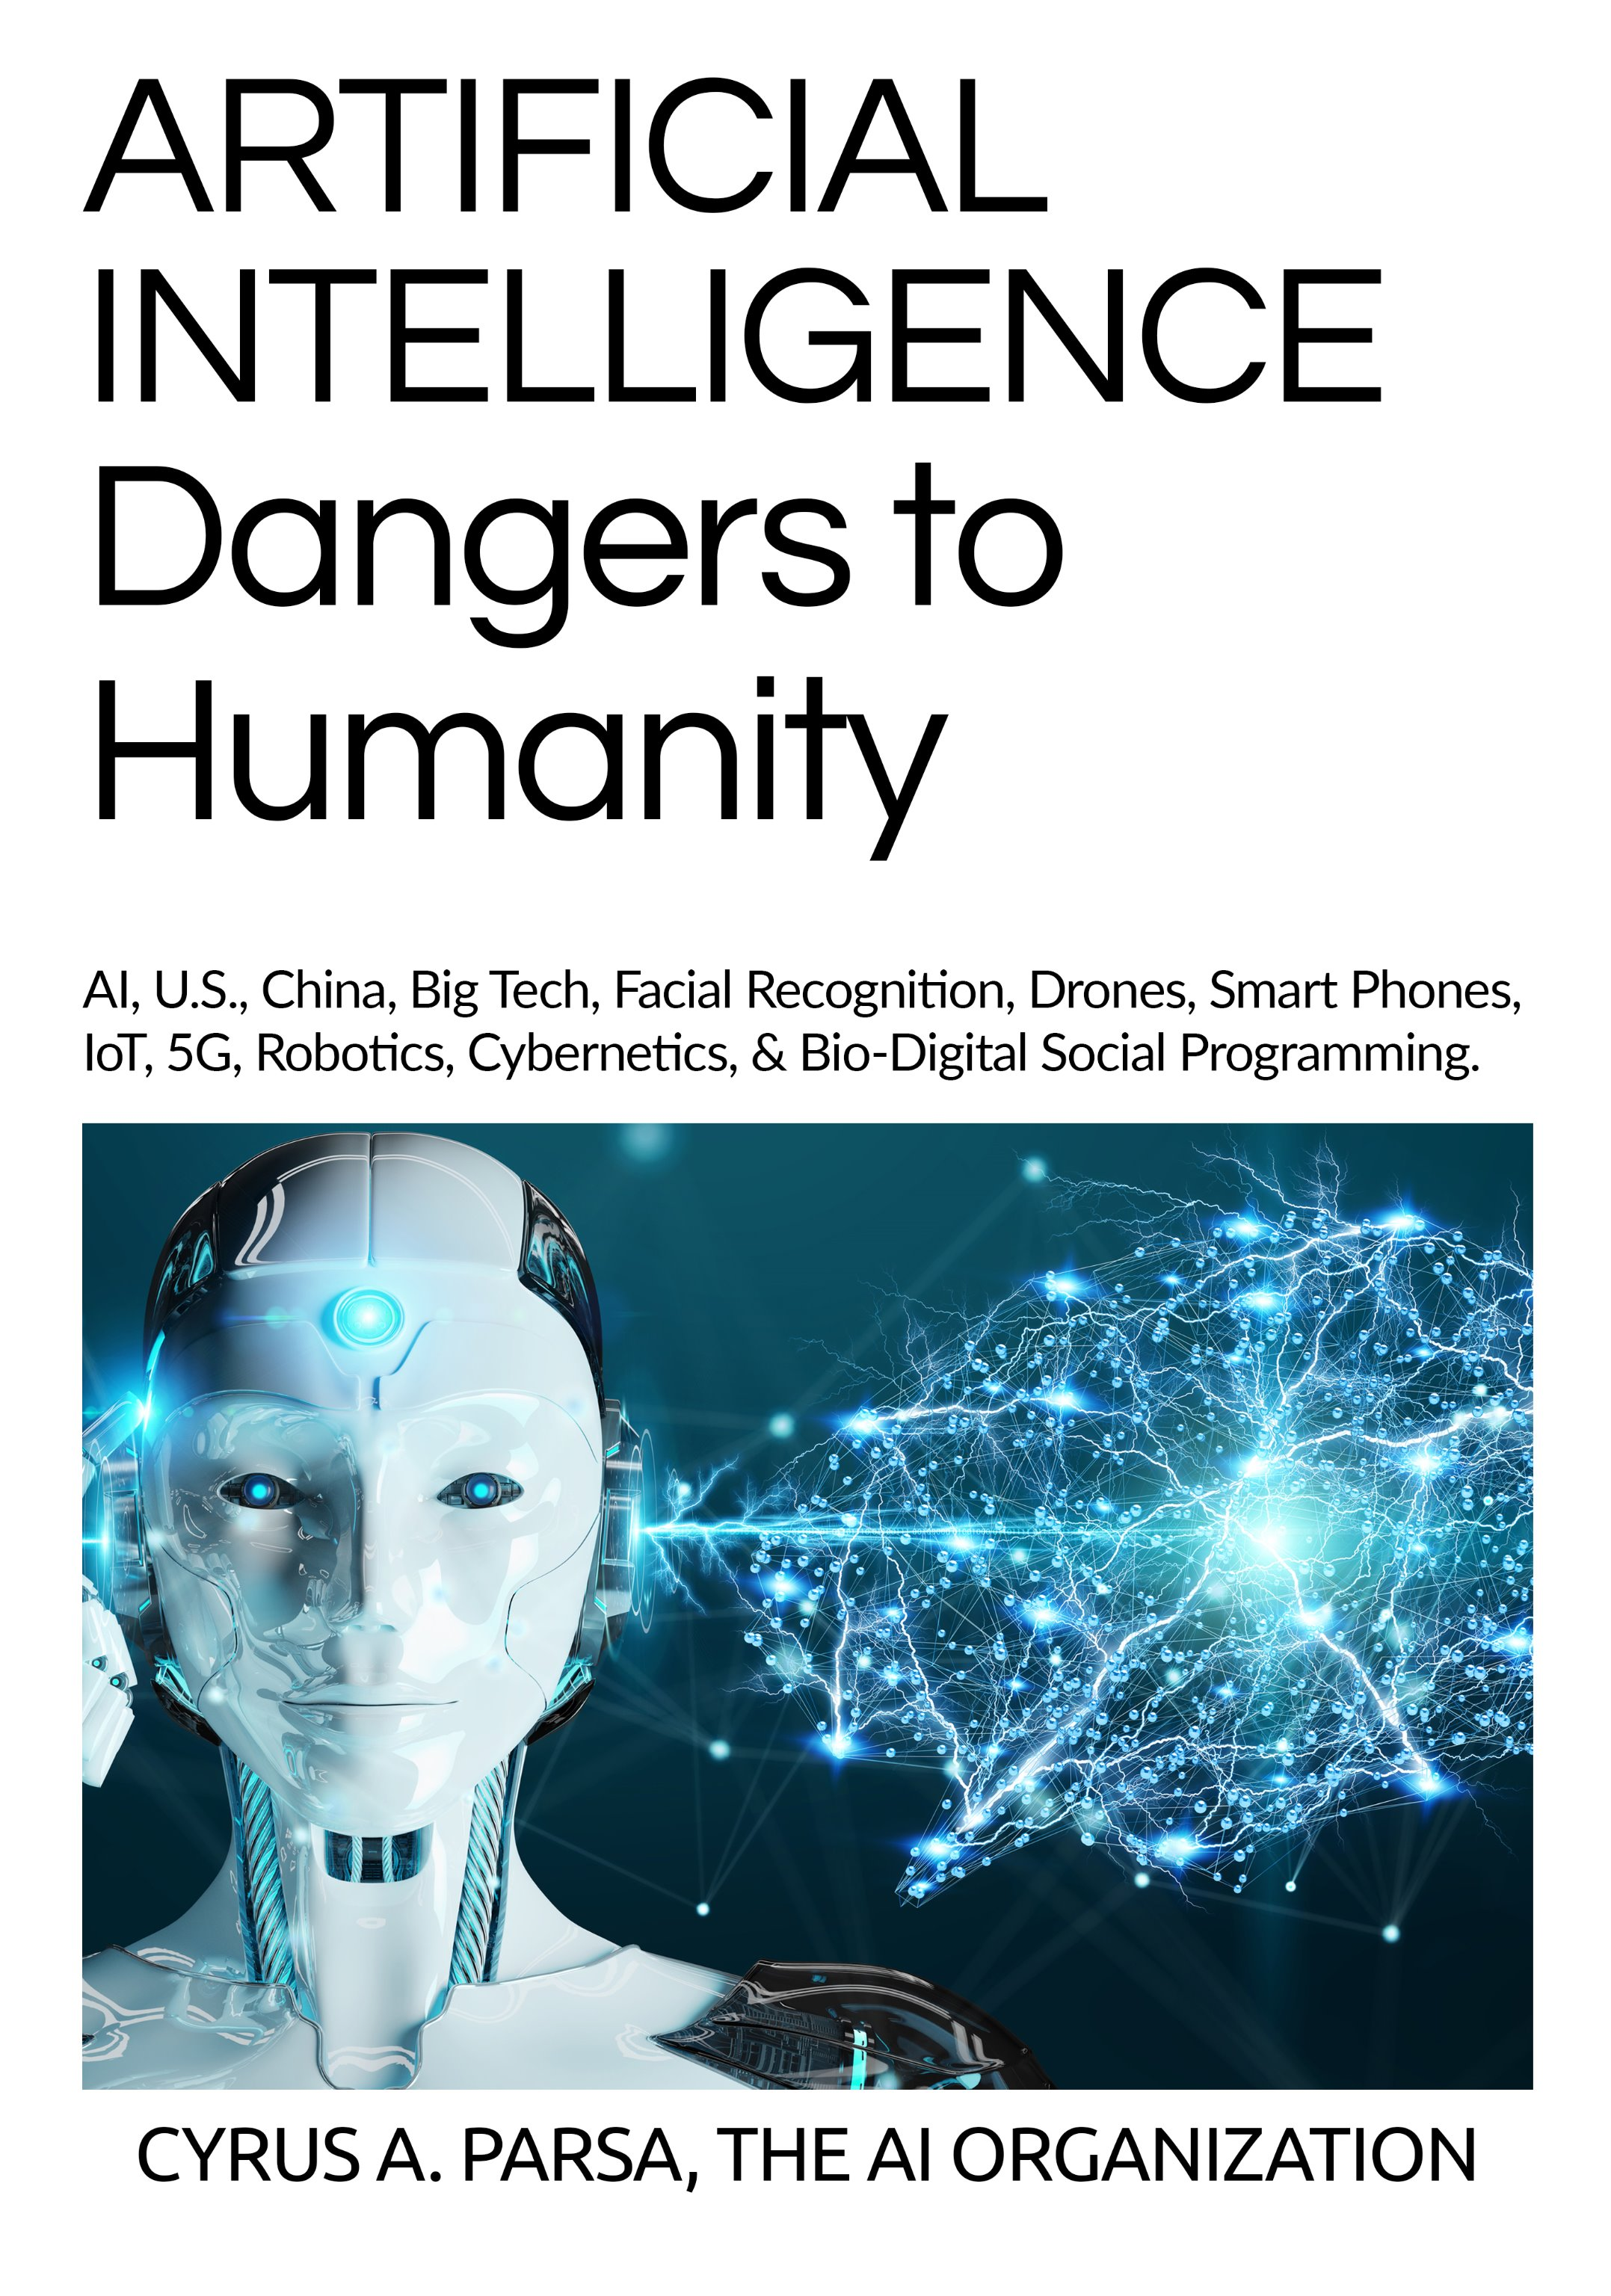 ARTIFICIAL INTELLIGENCE DANGERS TO HUMANITY CTC